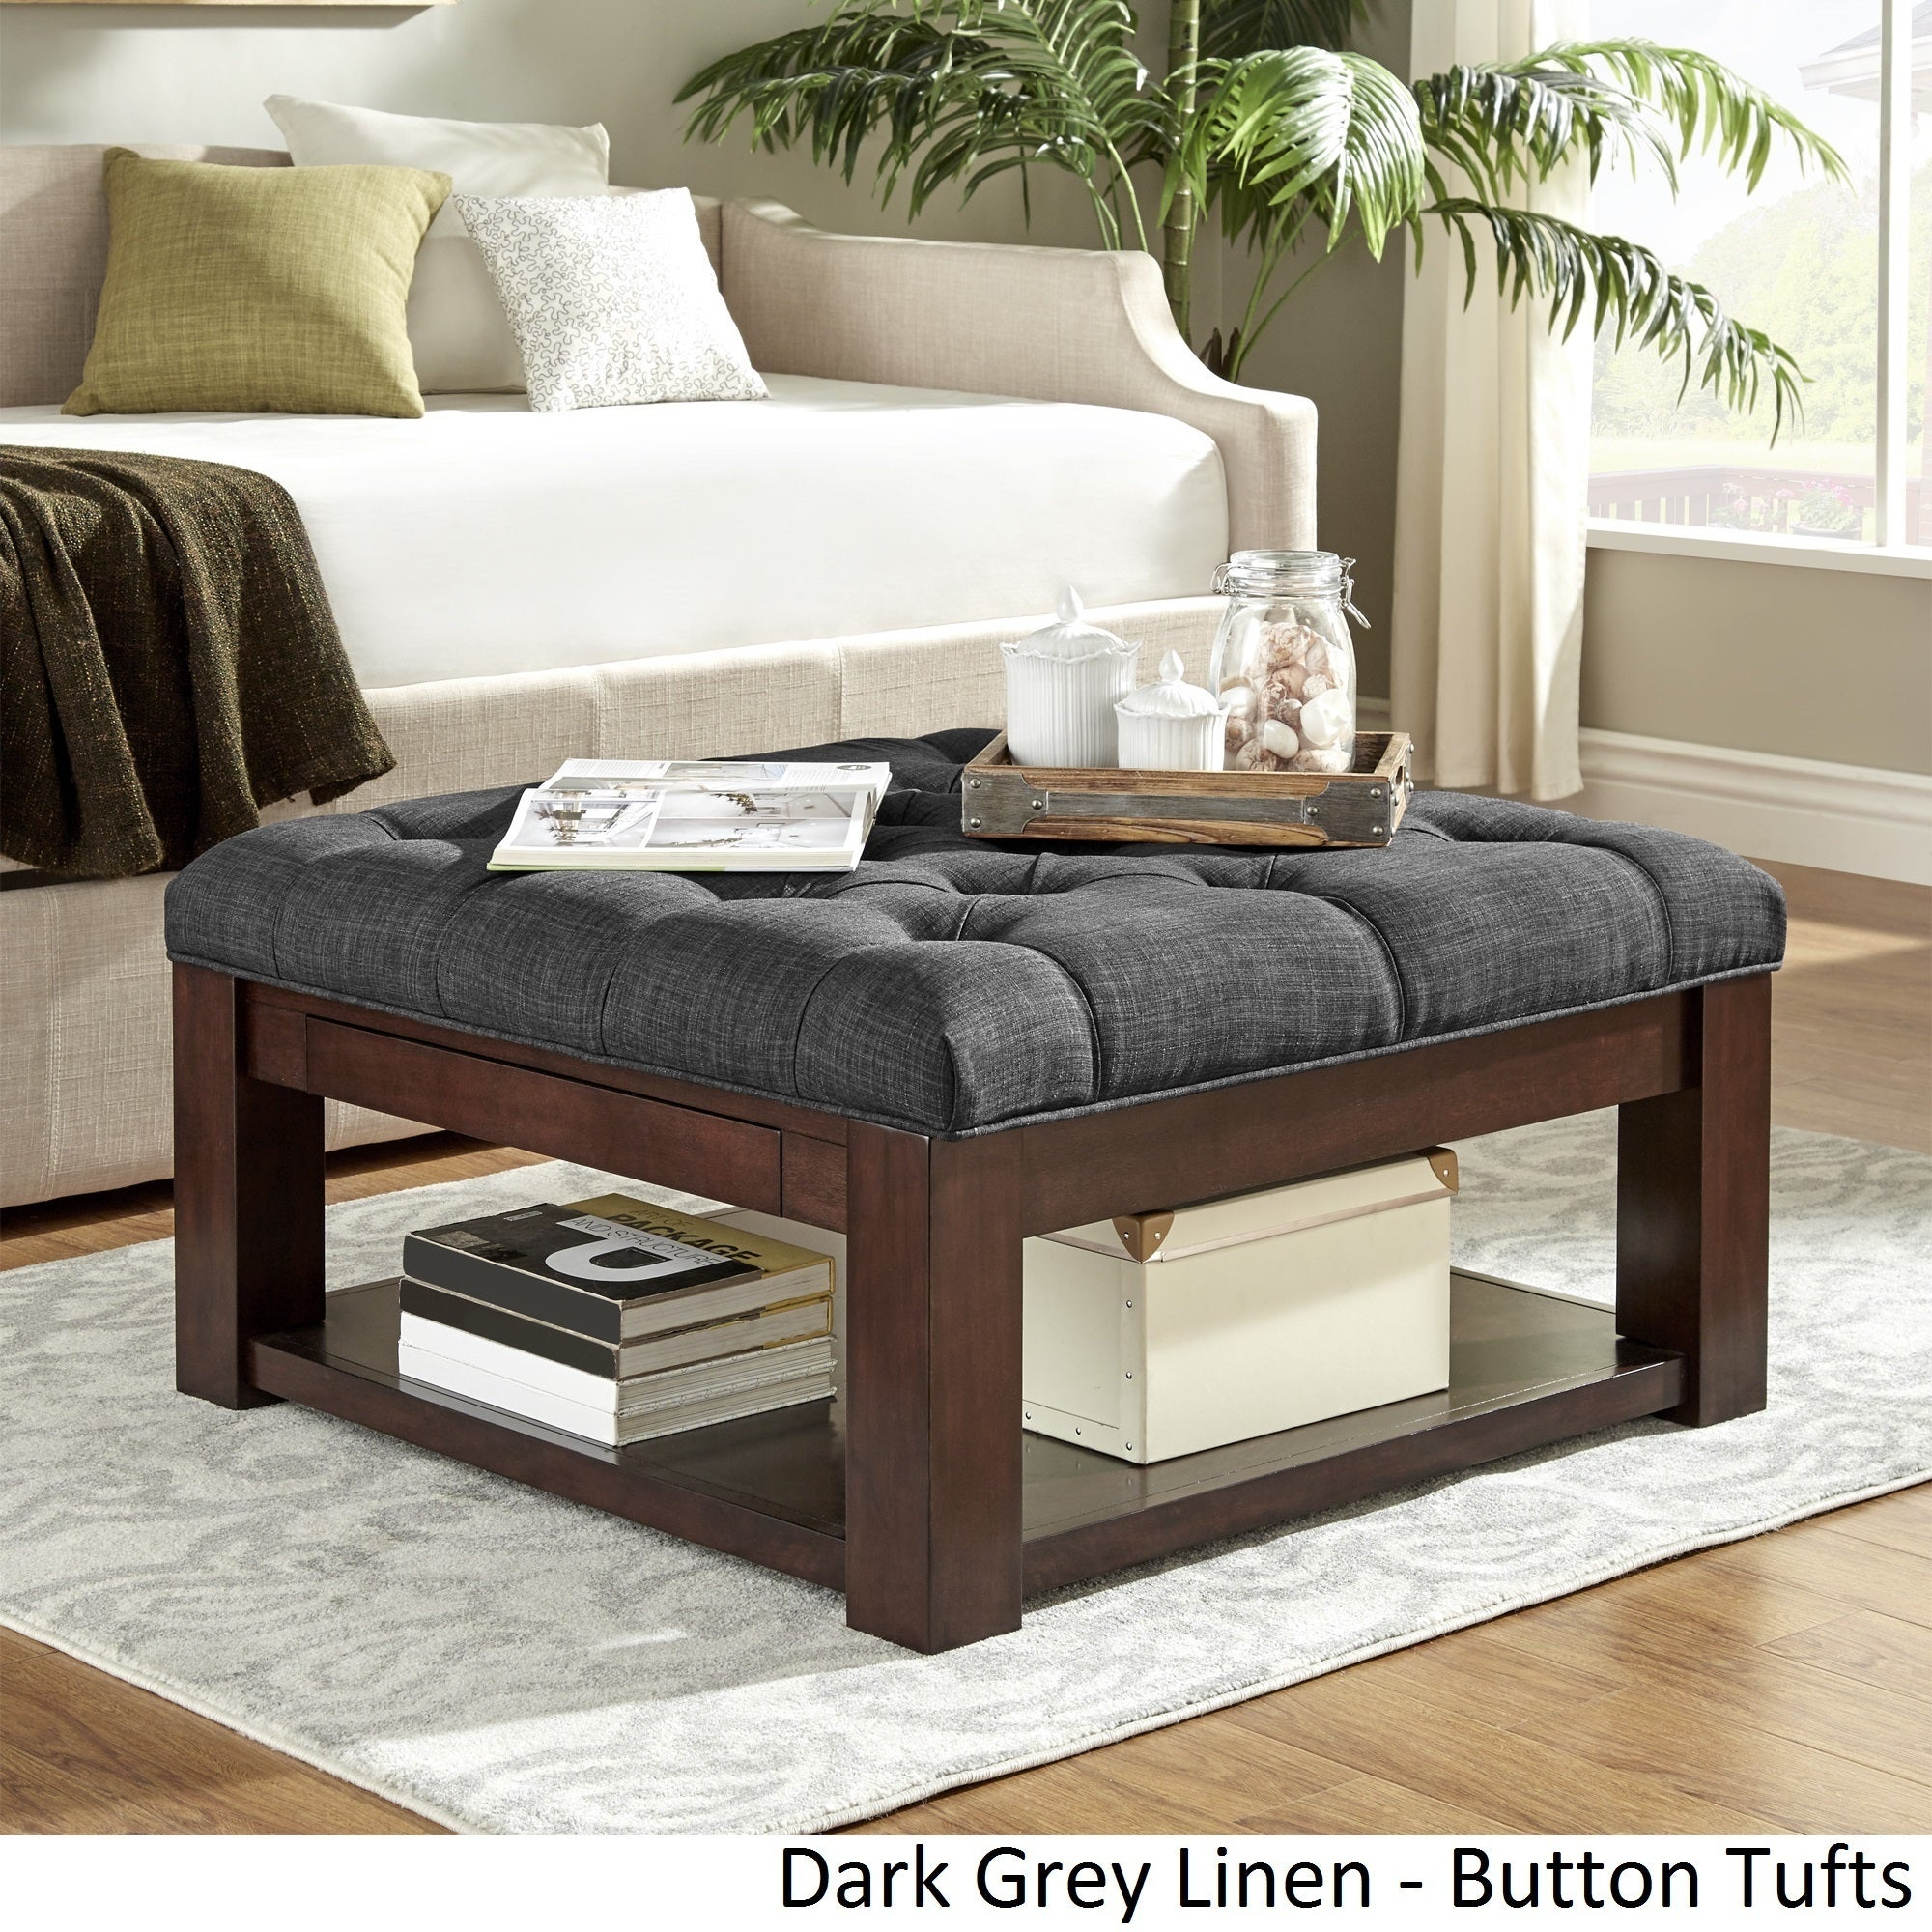 Lennon Espresso Square Storage Ottoman Coffee Table by iNSPIRE Q Classic -  Free Shipping Today - Overstock.com - 20137486